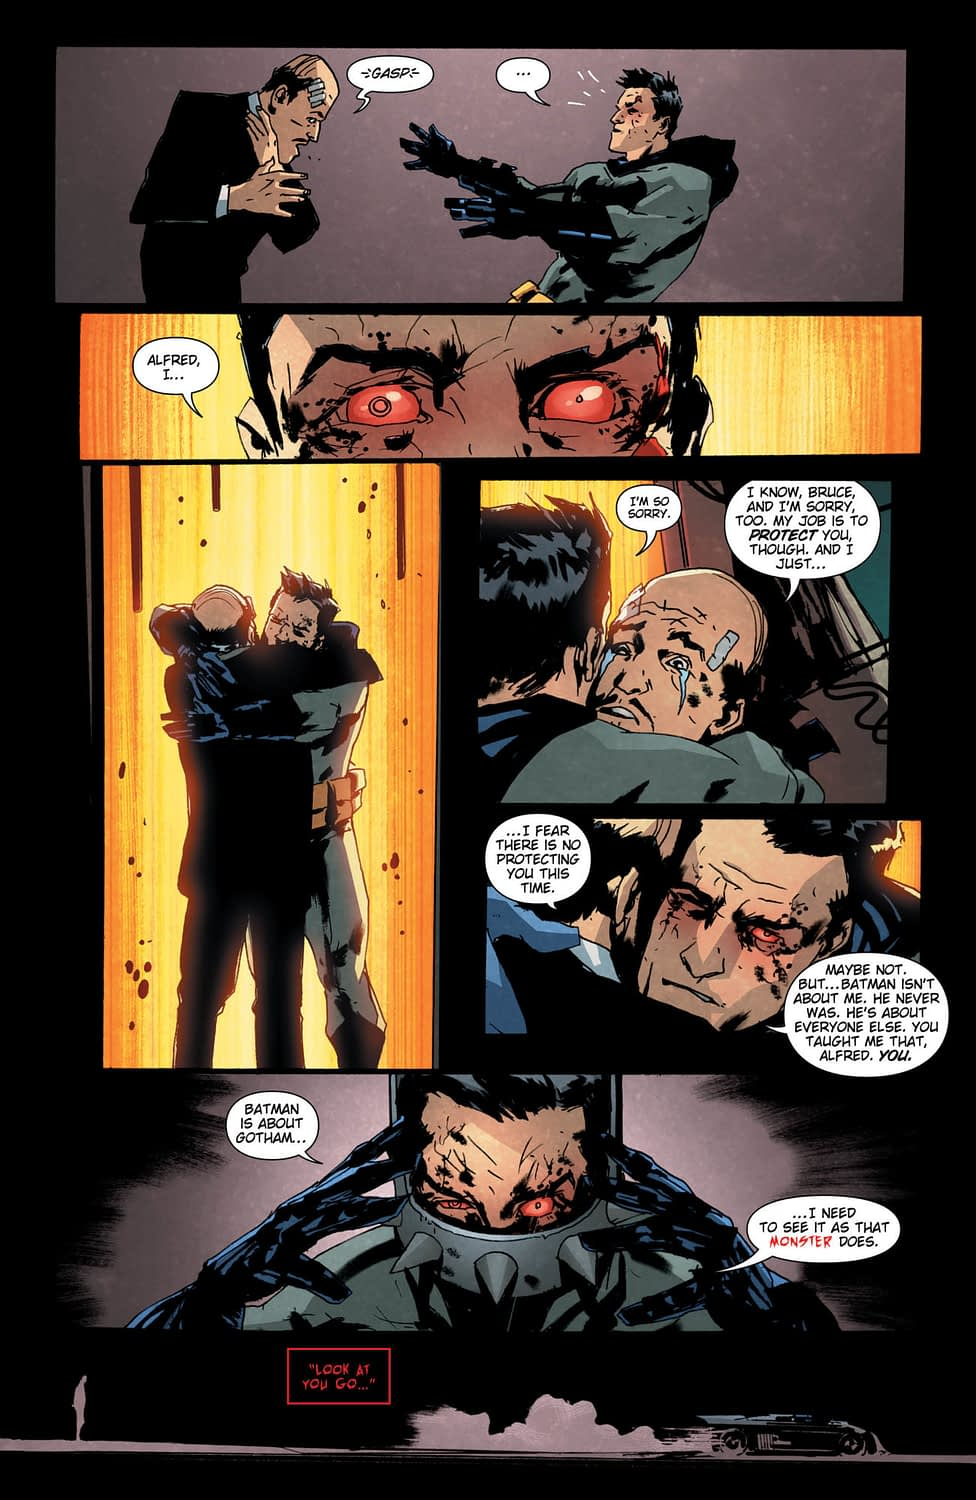 In Batman Who Laughs #4, We Learn Alfred Can Beat Batman in a Fight